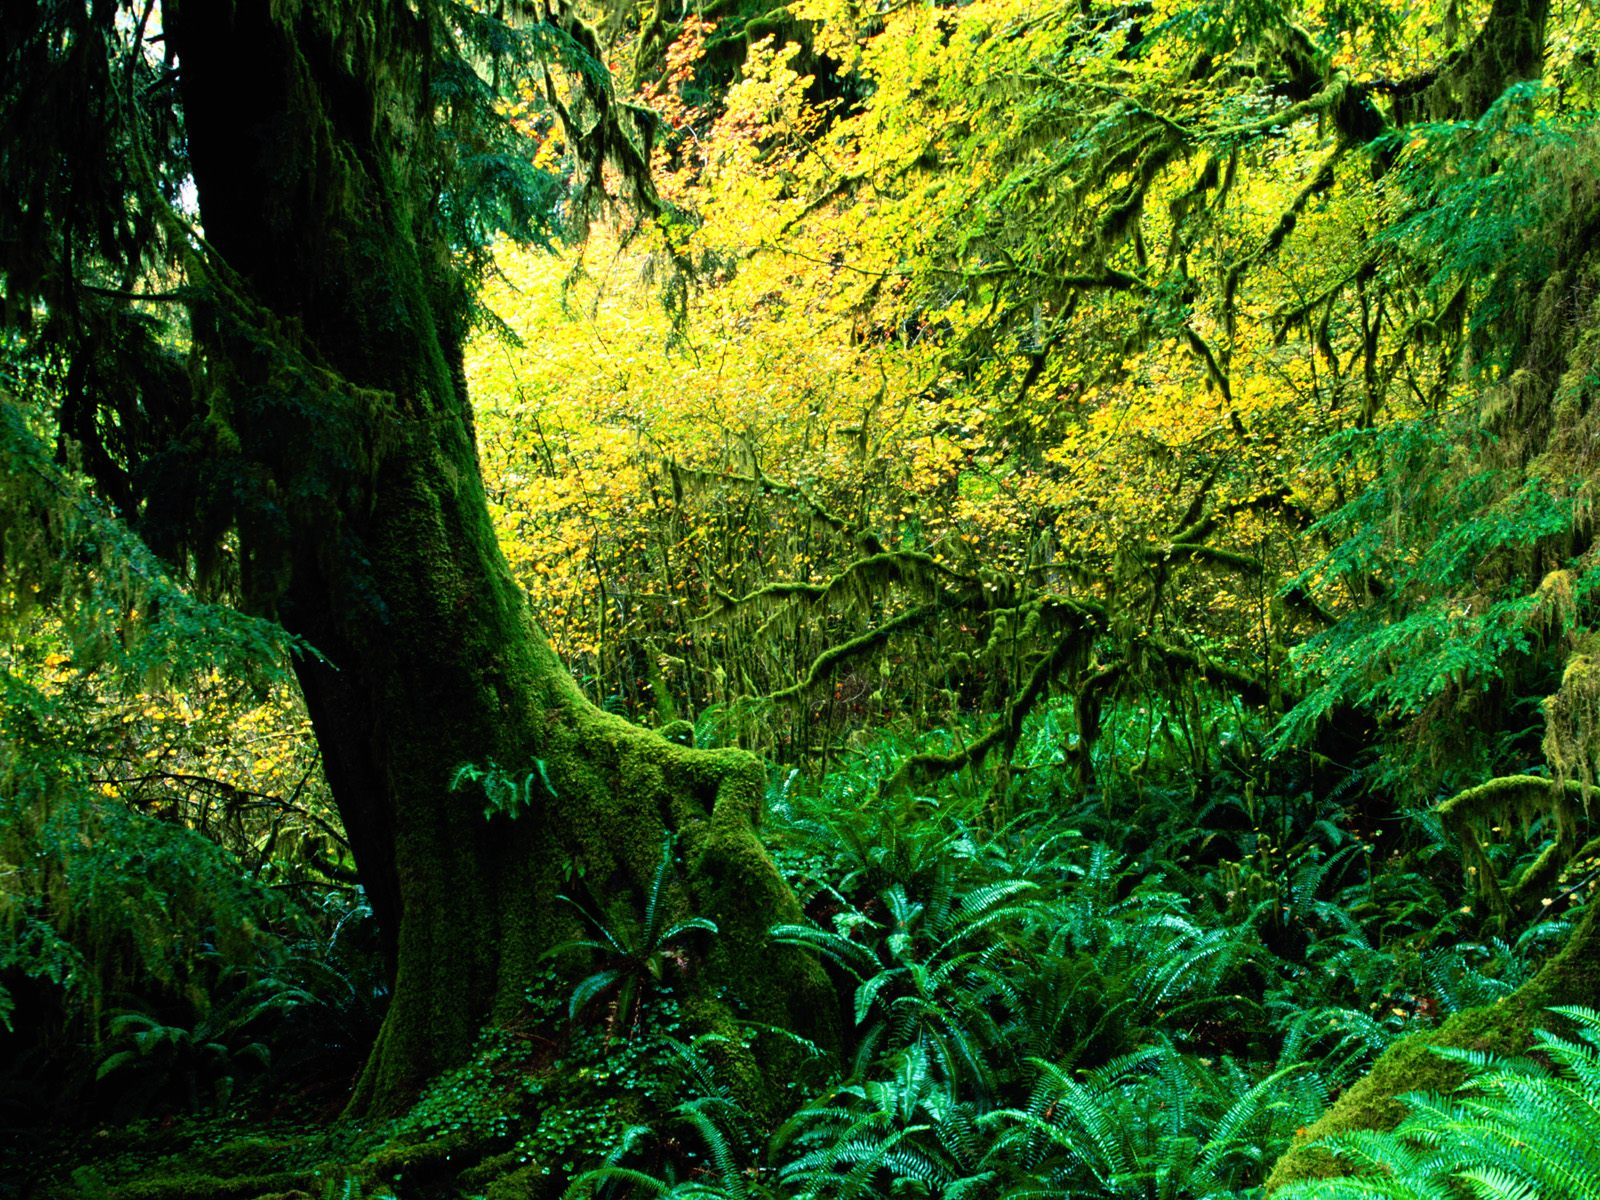 http://www.bergoiata.org/fe/trees/Hoh%20Rainforest,%20Olympic%20National%20Park,%20Washington.jpg